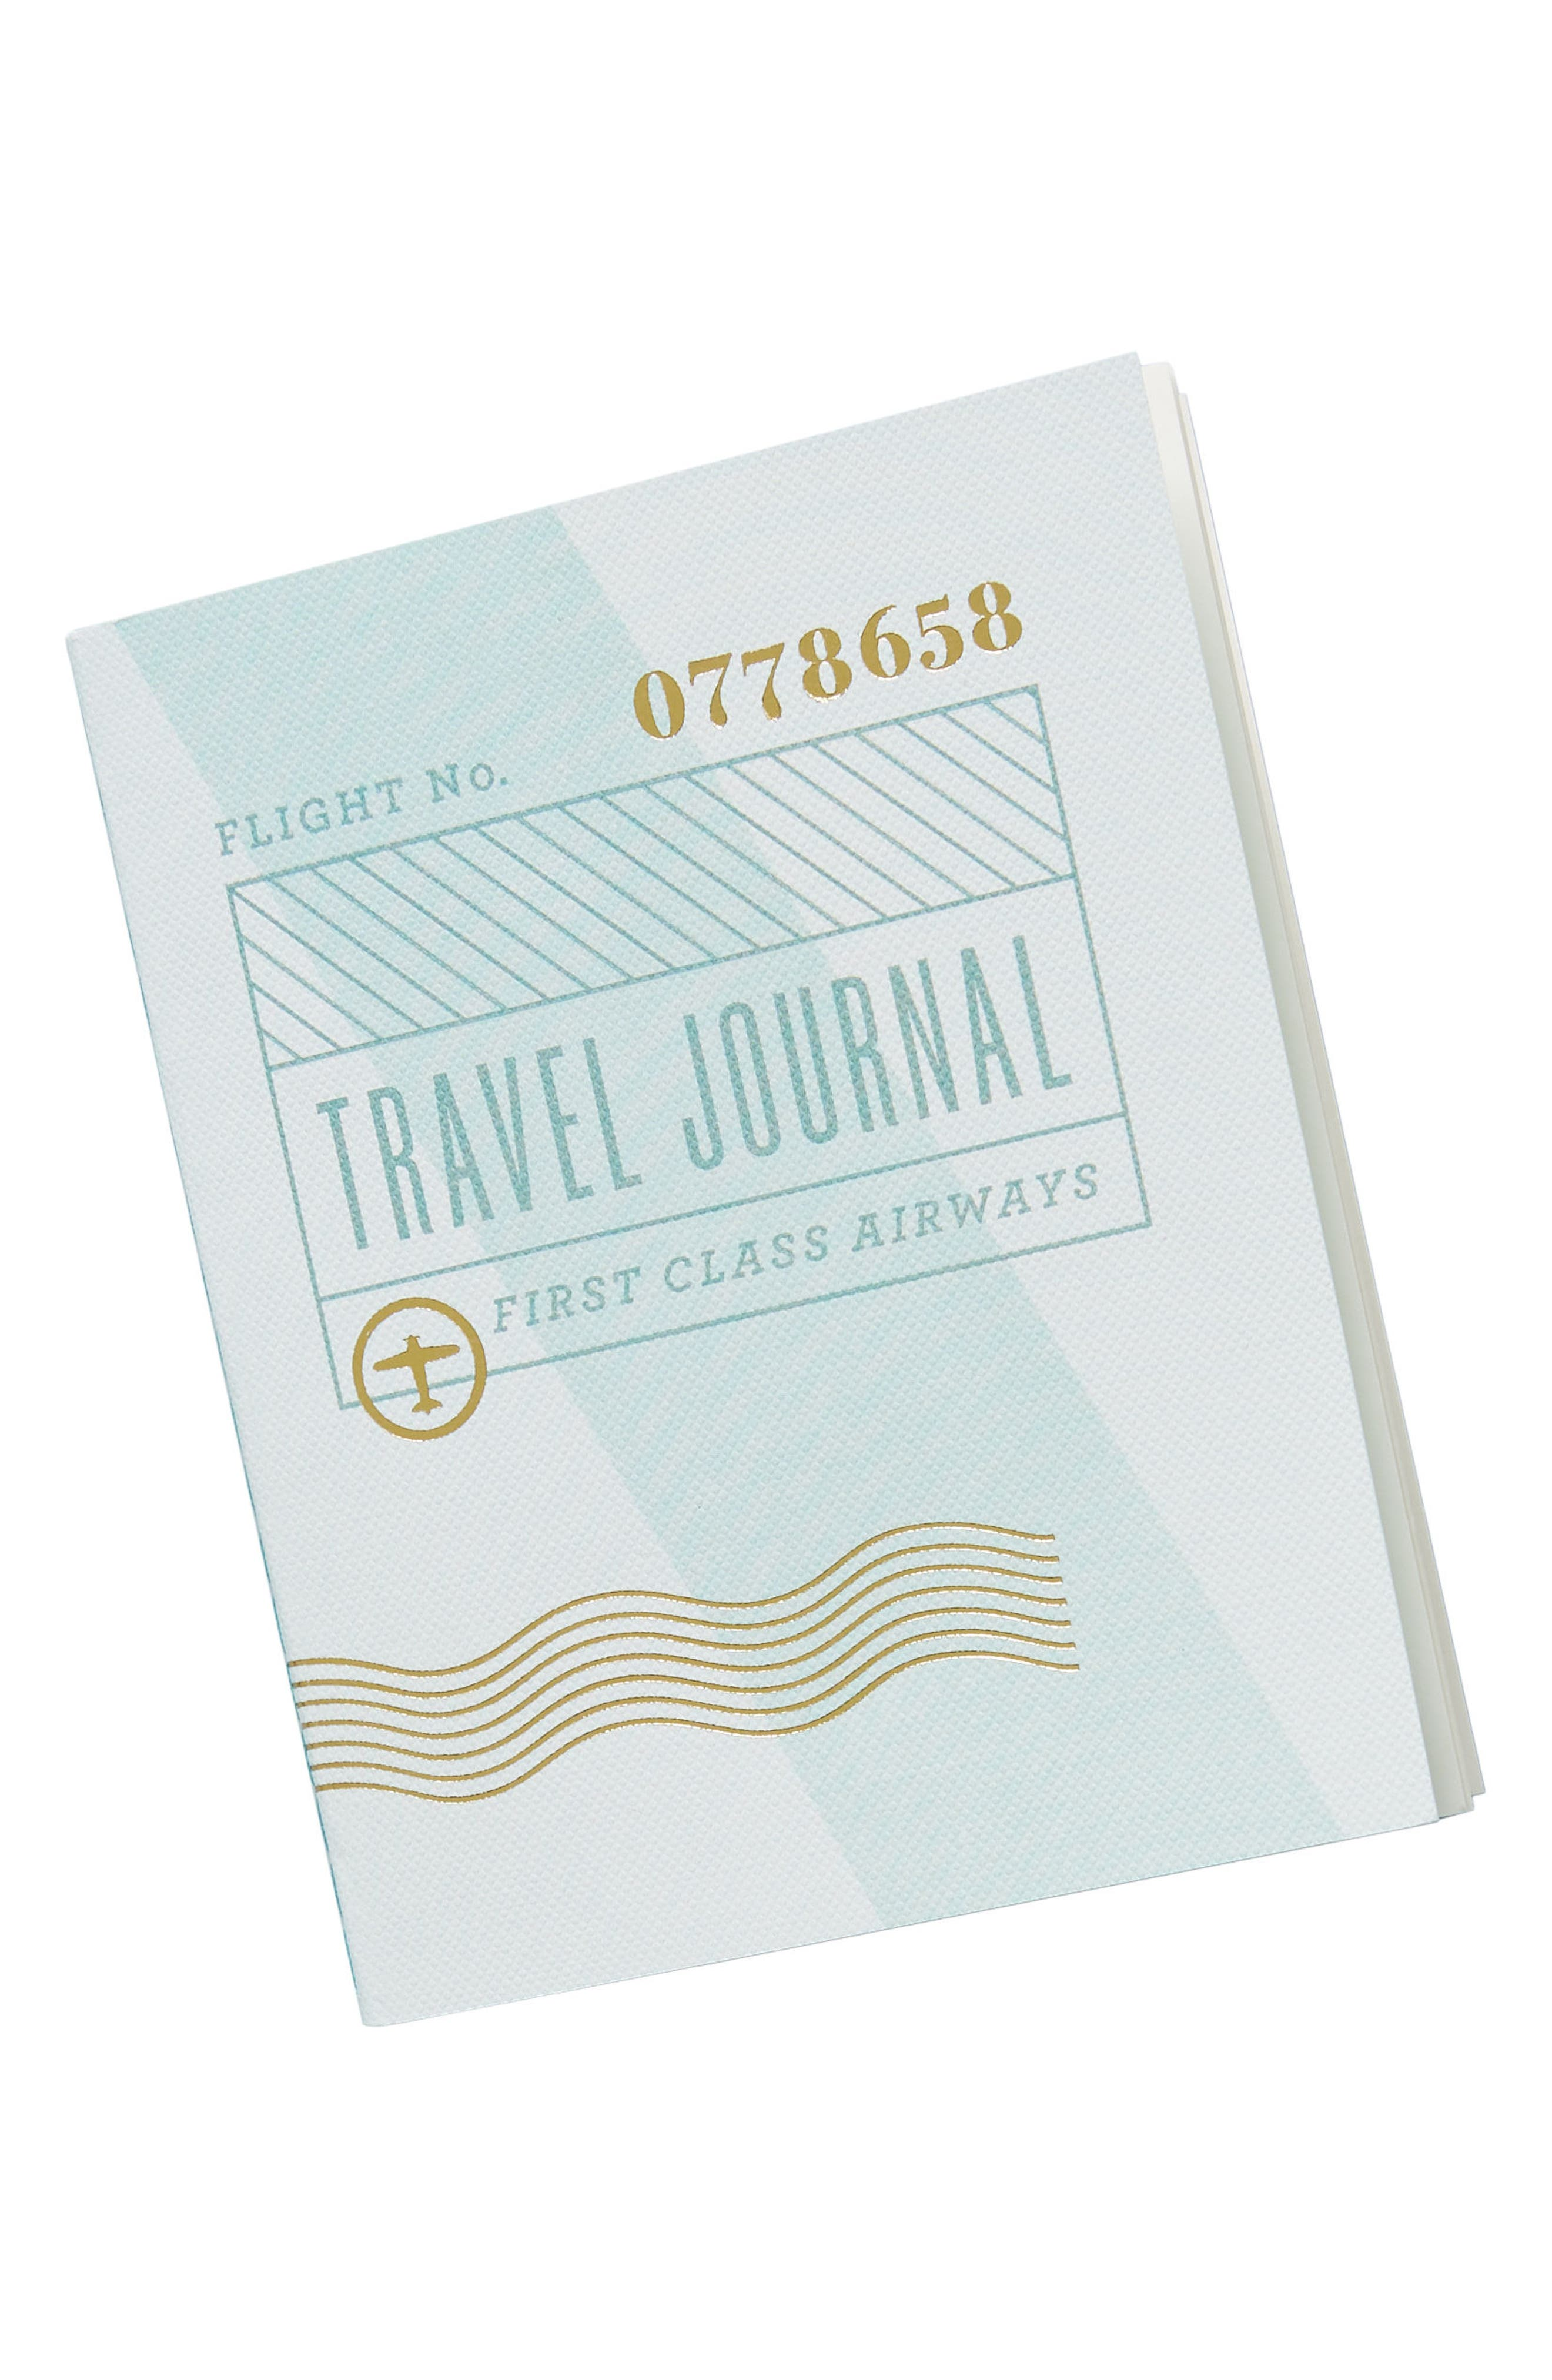 Locale Travel Journal,                             Alternate thumbnail 4, color,                             303